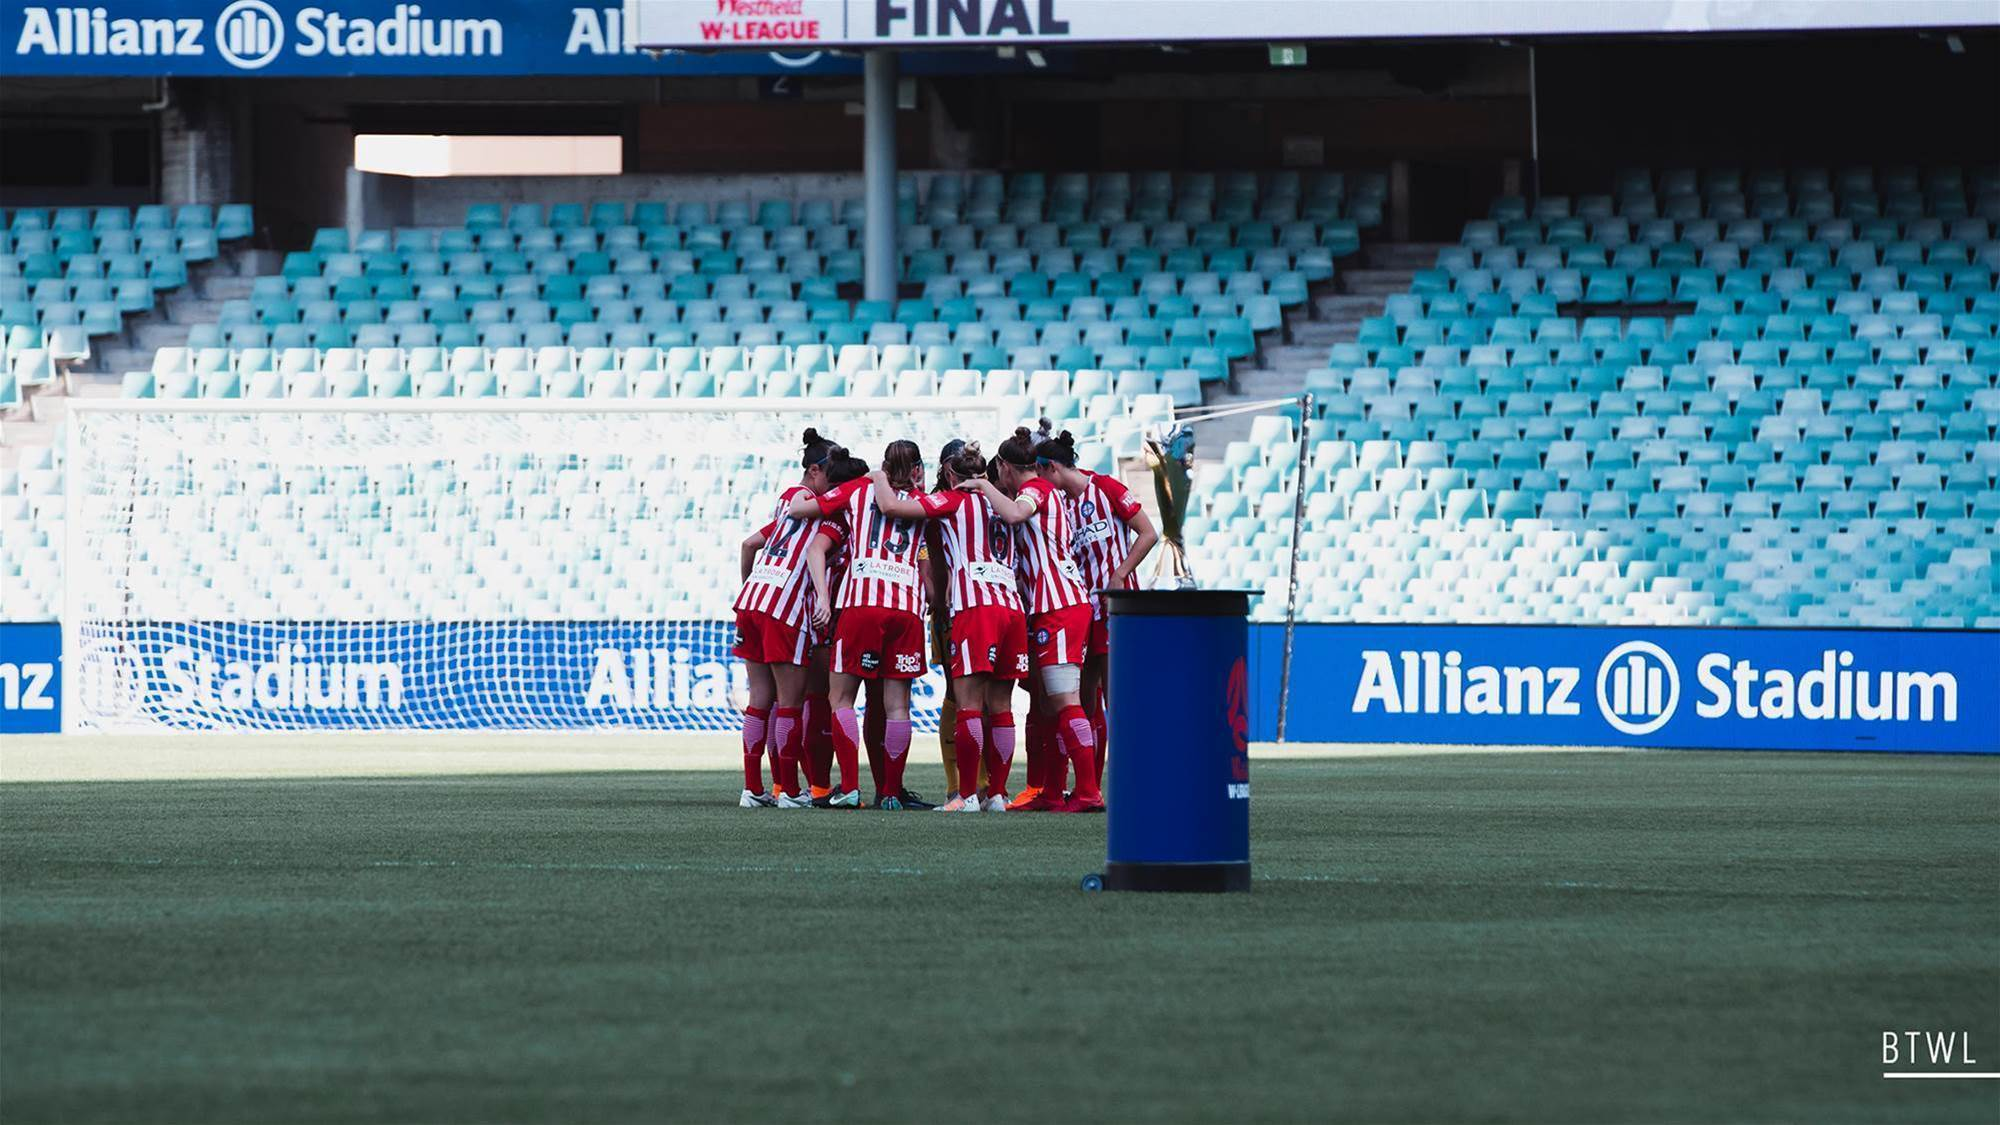 How to watch W-League 2018/19